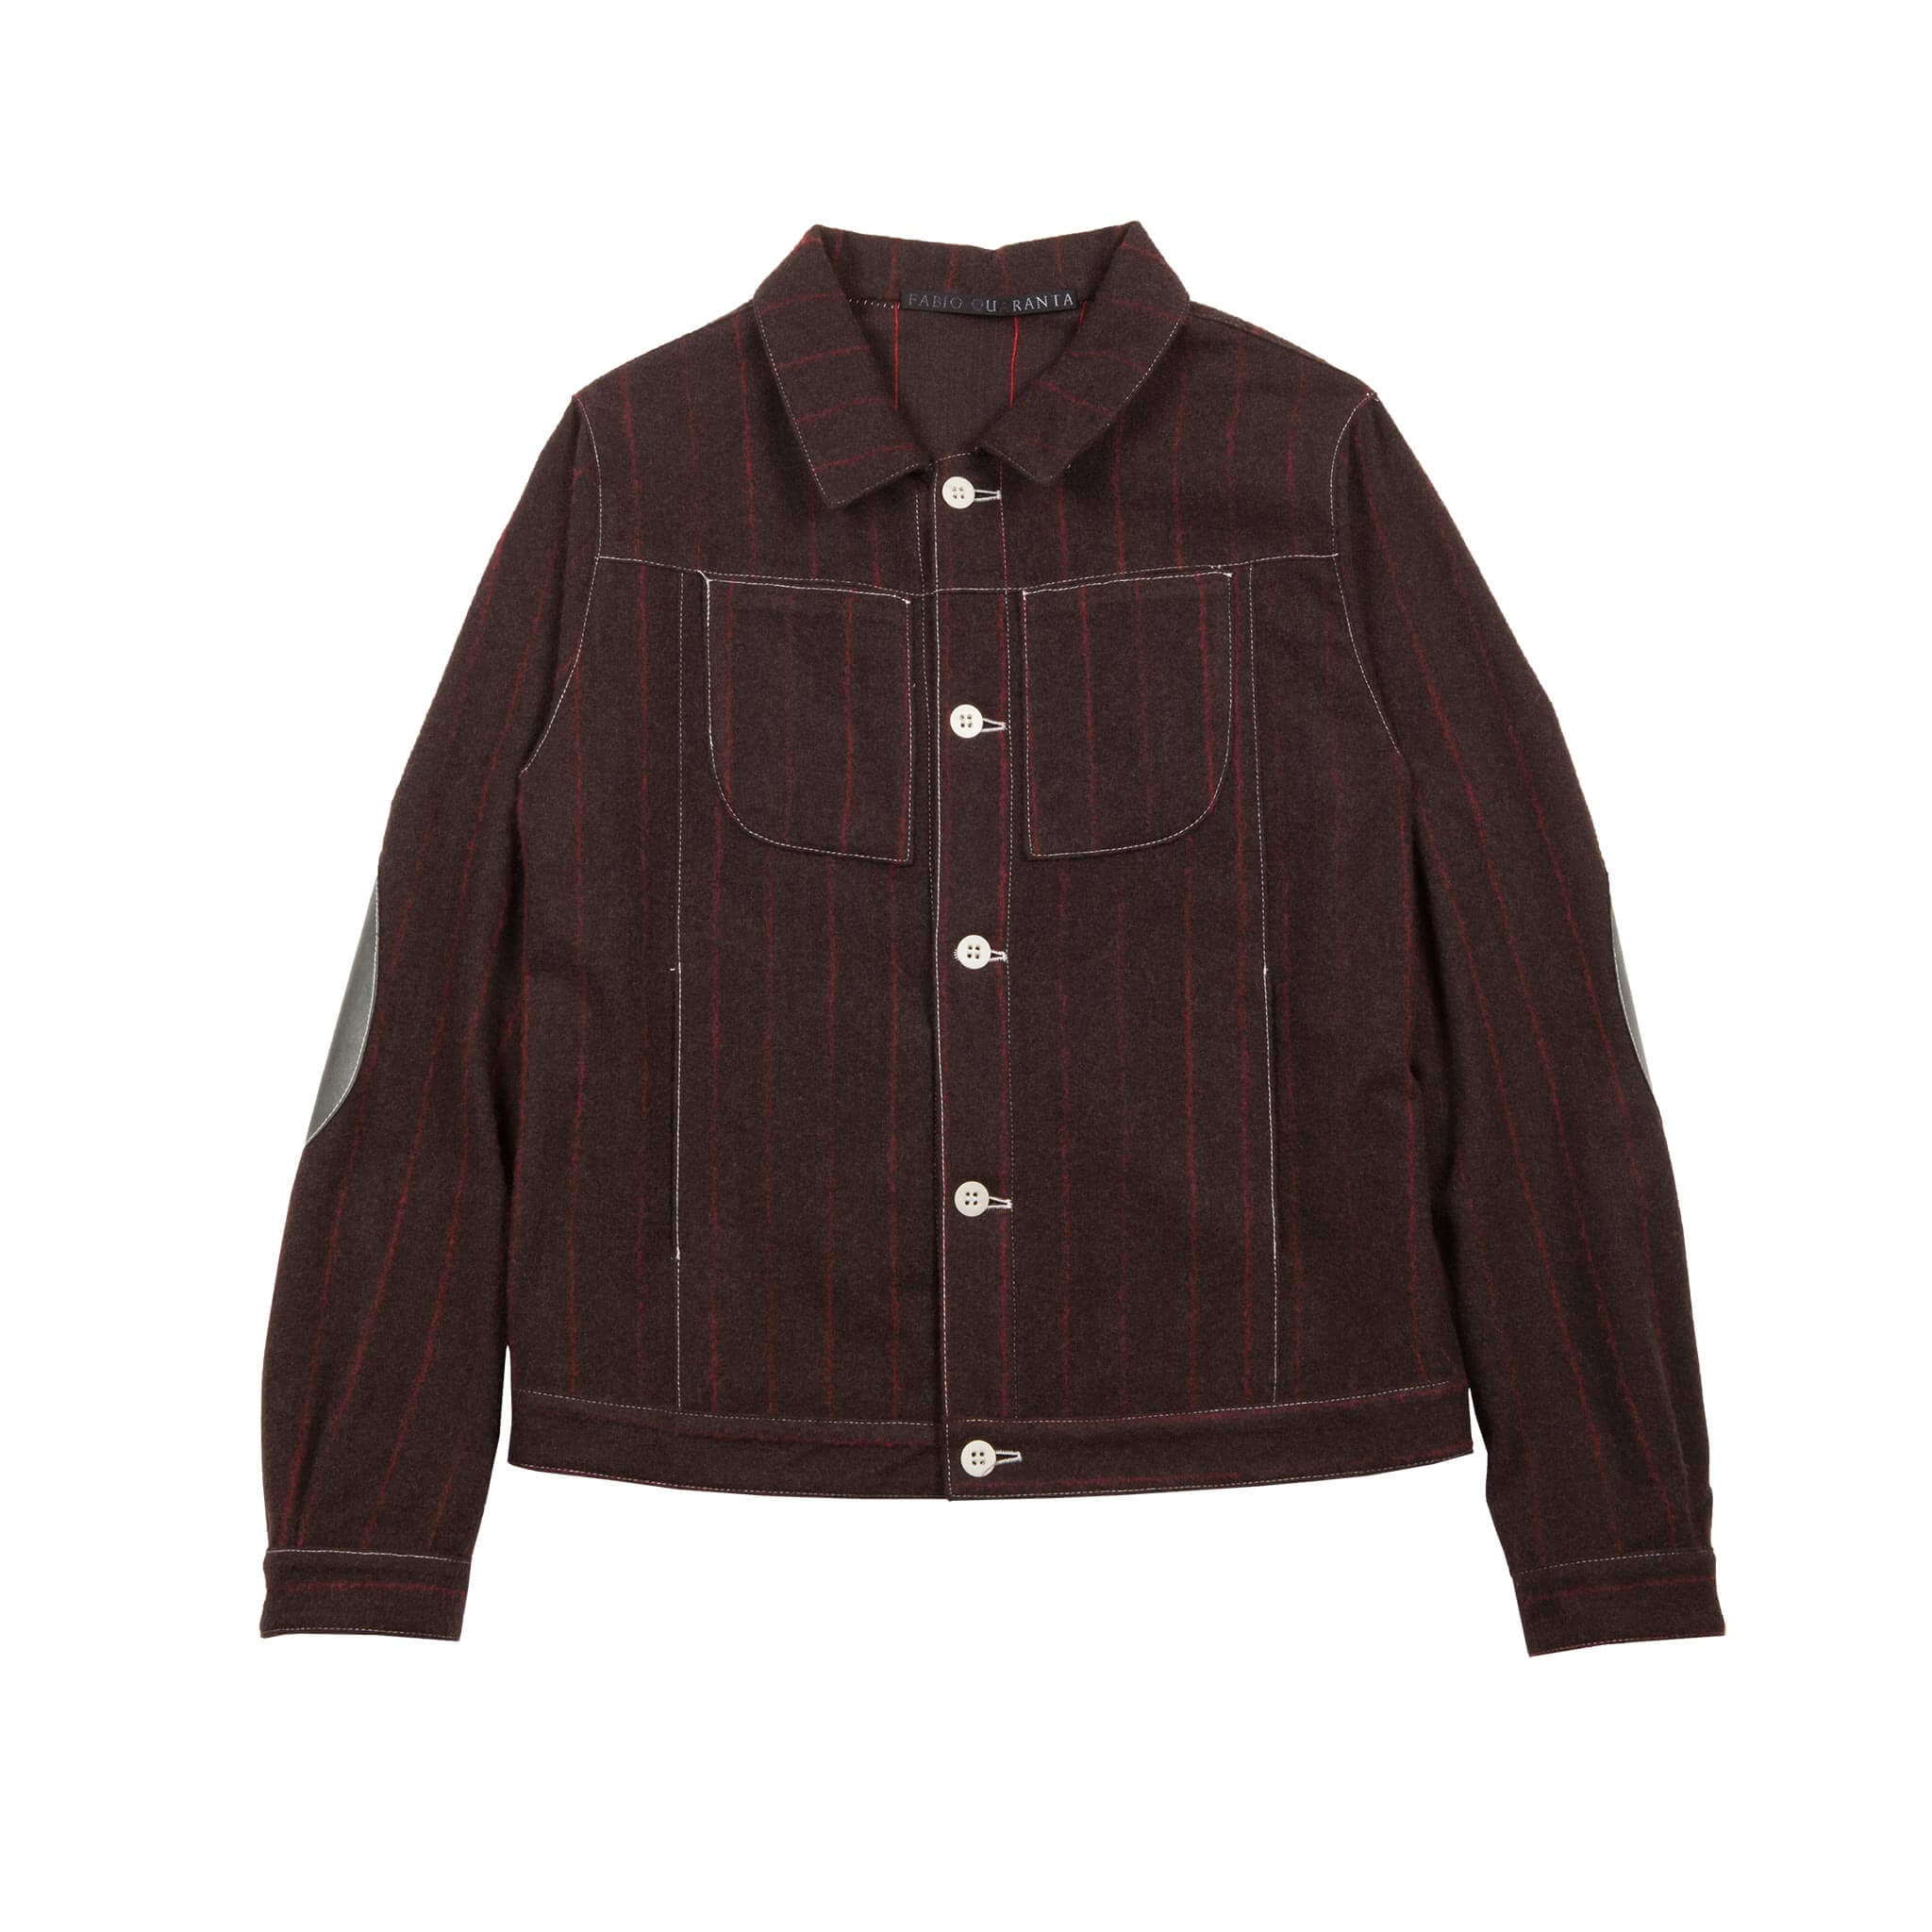 WOOL PINSTRIPE TRUCKER JACKET 1 of 1